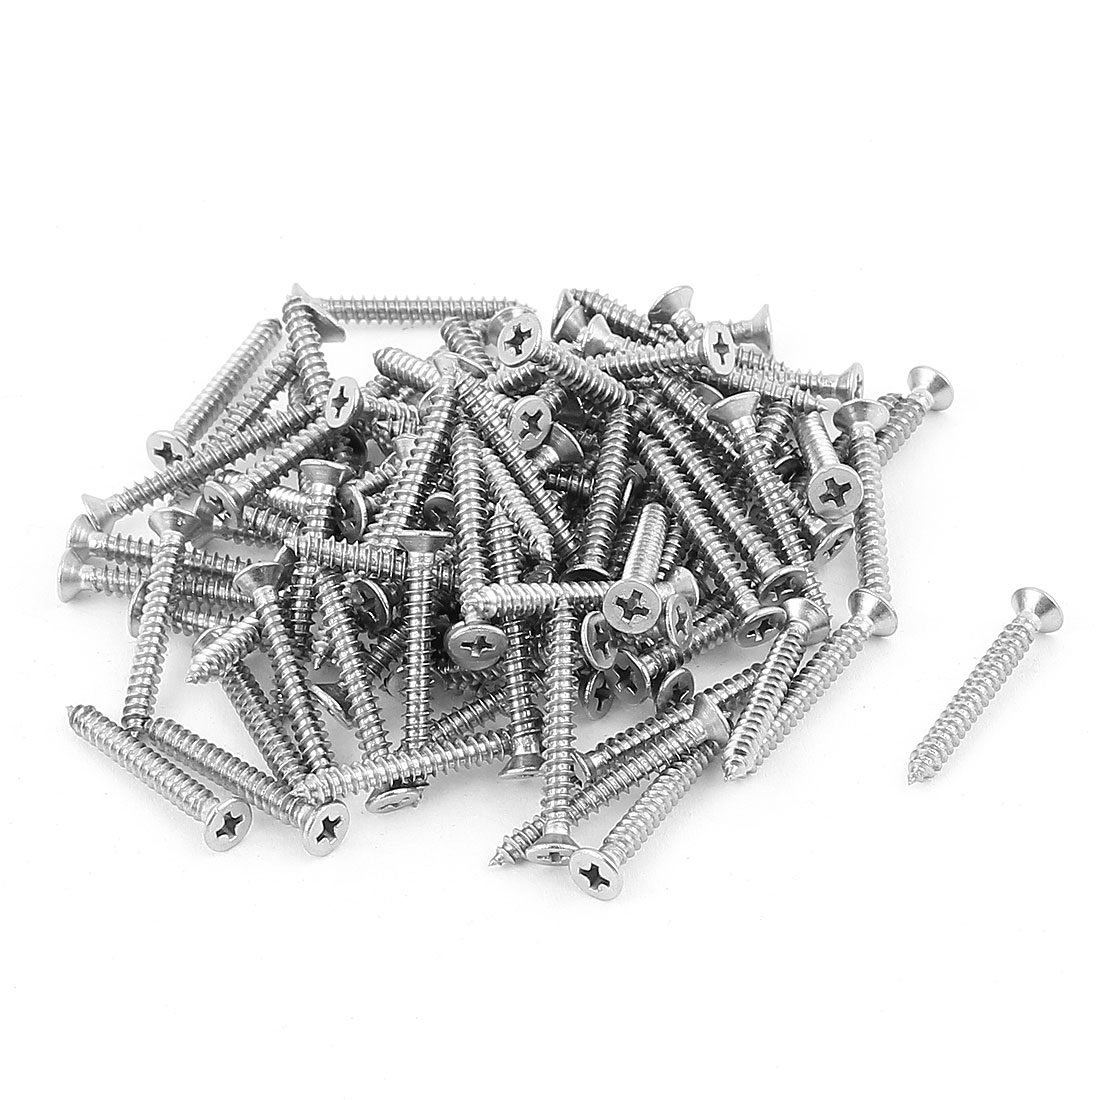 2.9mm x 25mm Countersunk Cross Head Self Tapping Screw Fasteners 100 Pcs